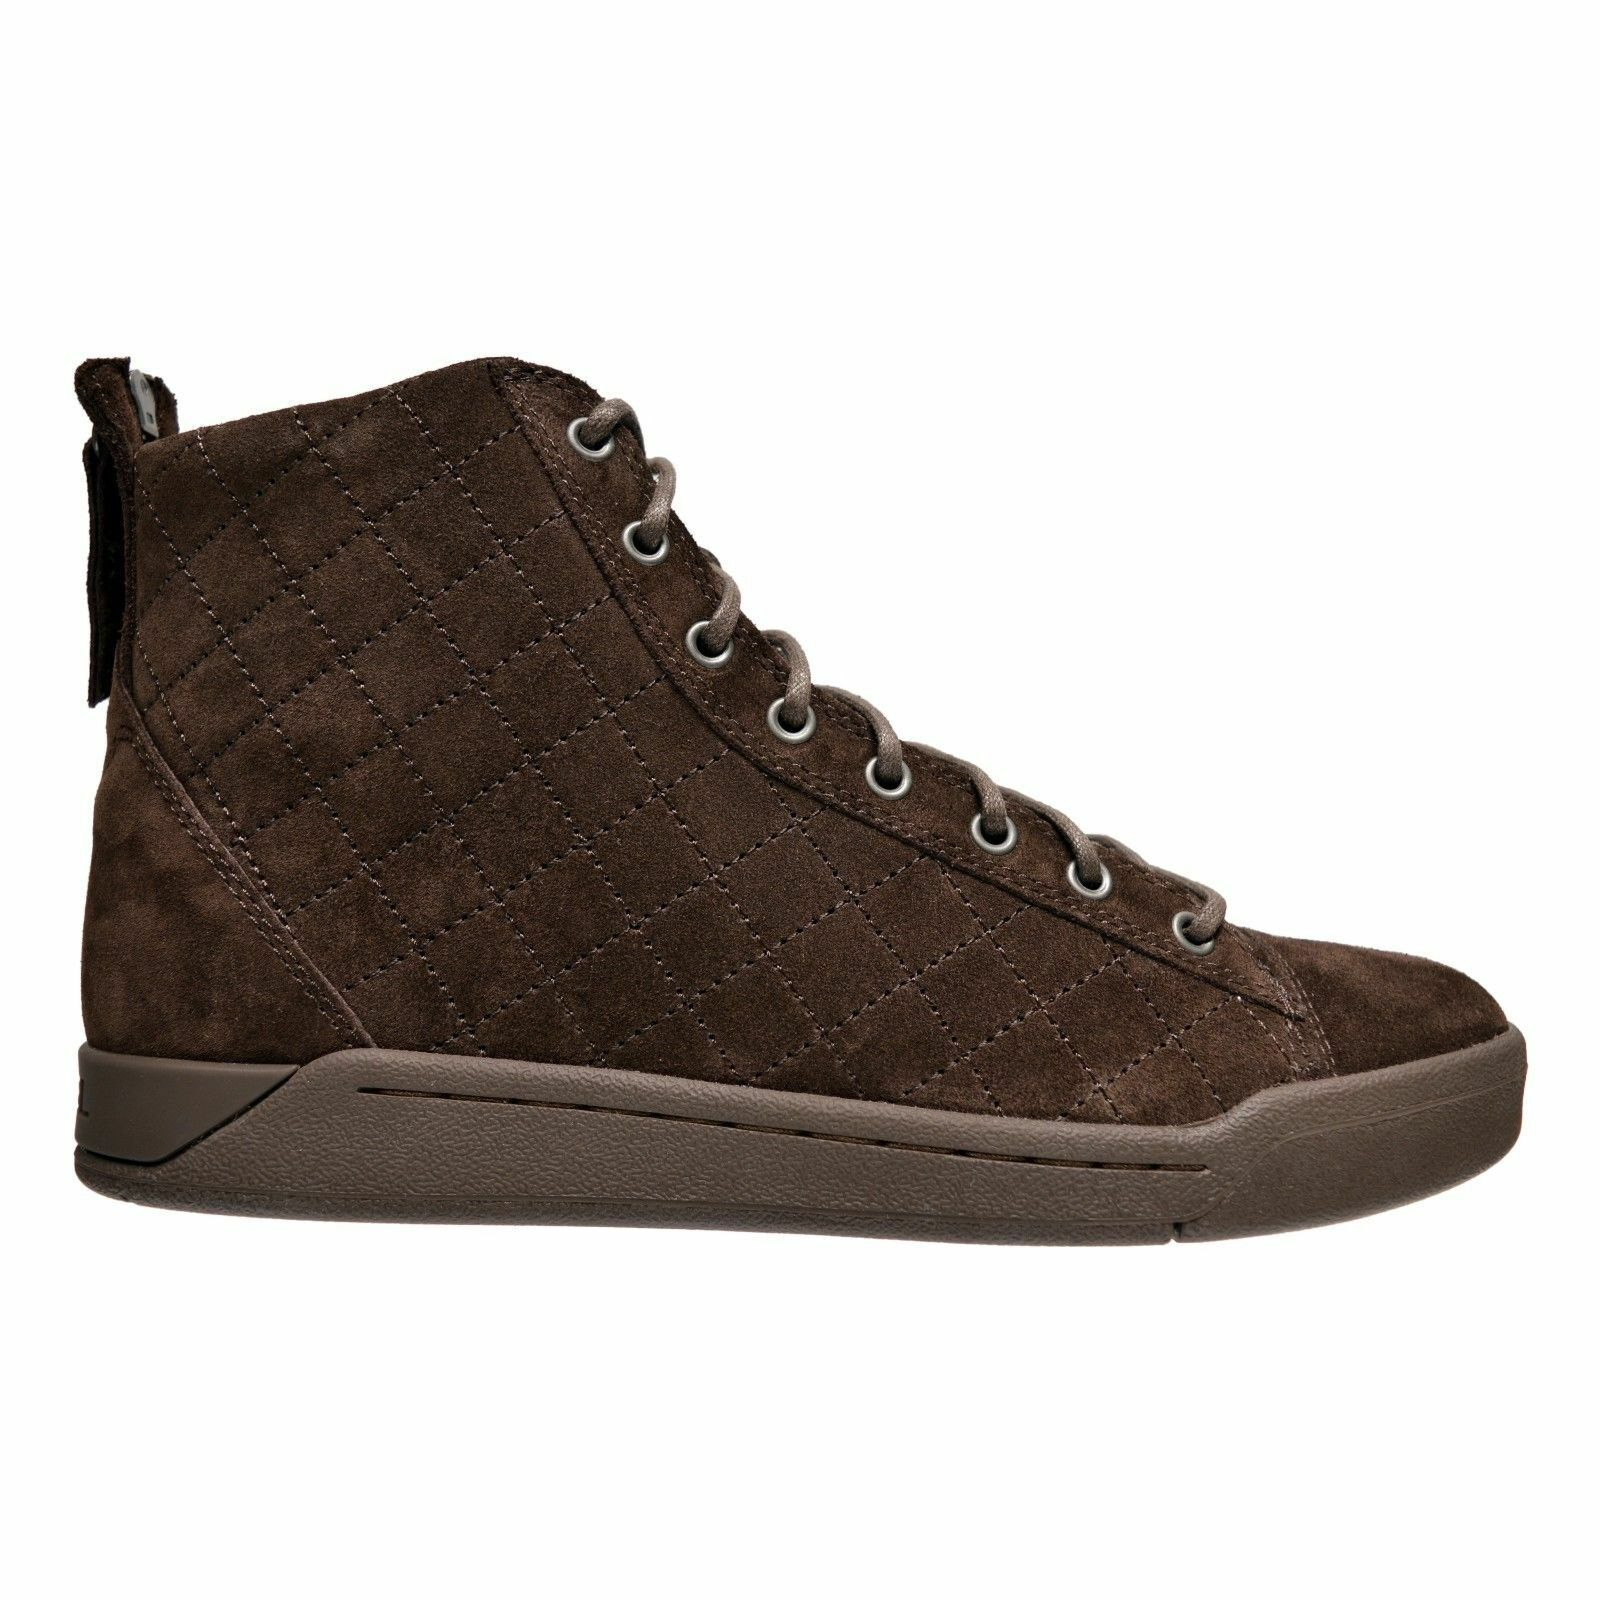 Men's Diesel Tempus Diamond Suede High Top Sneakers Brown